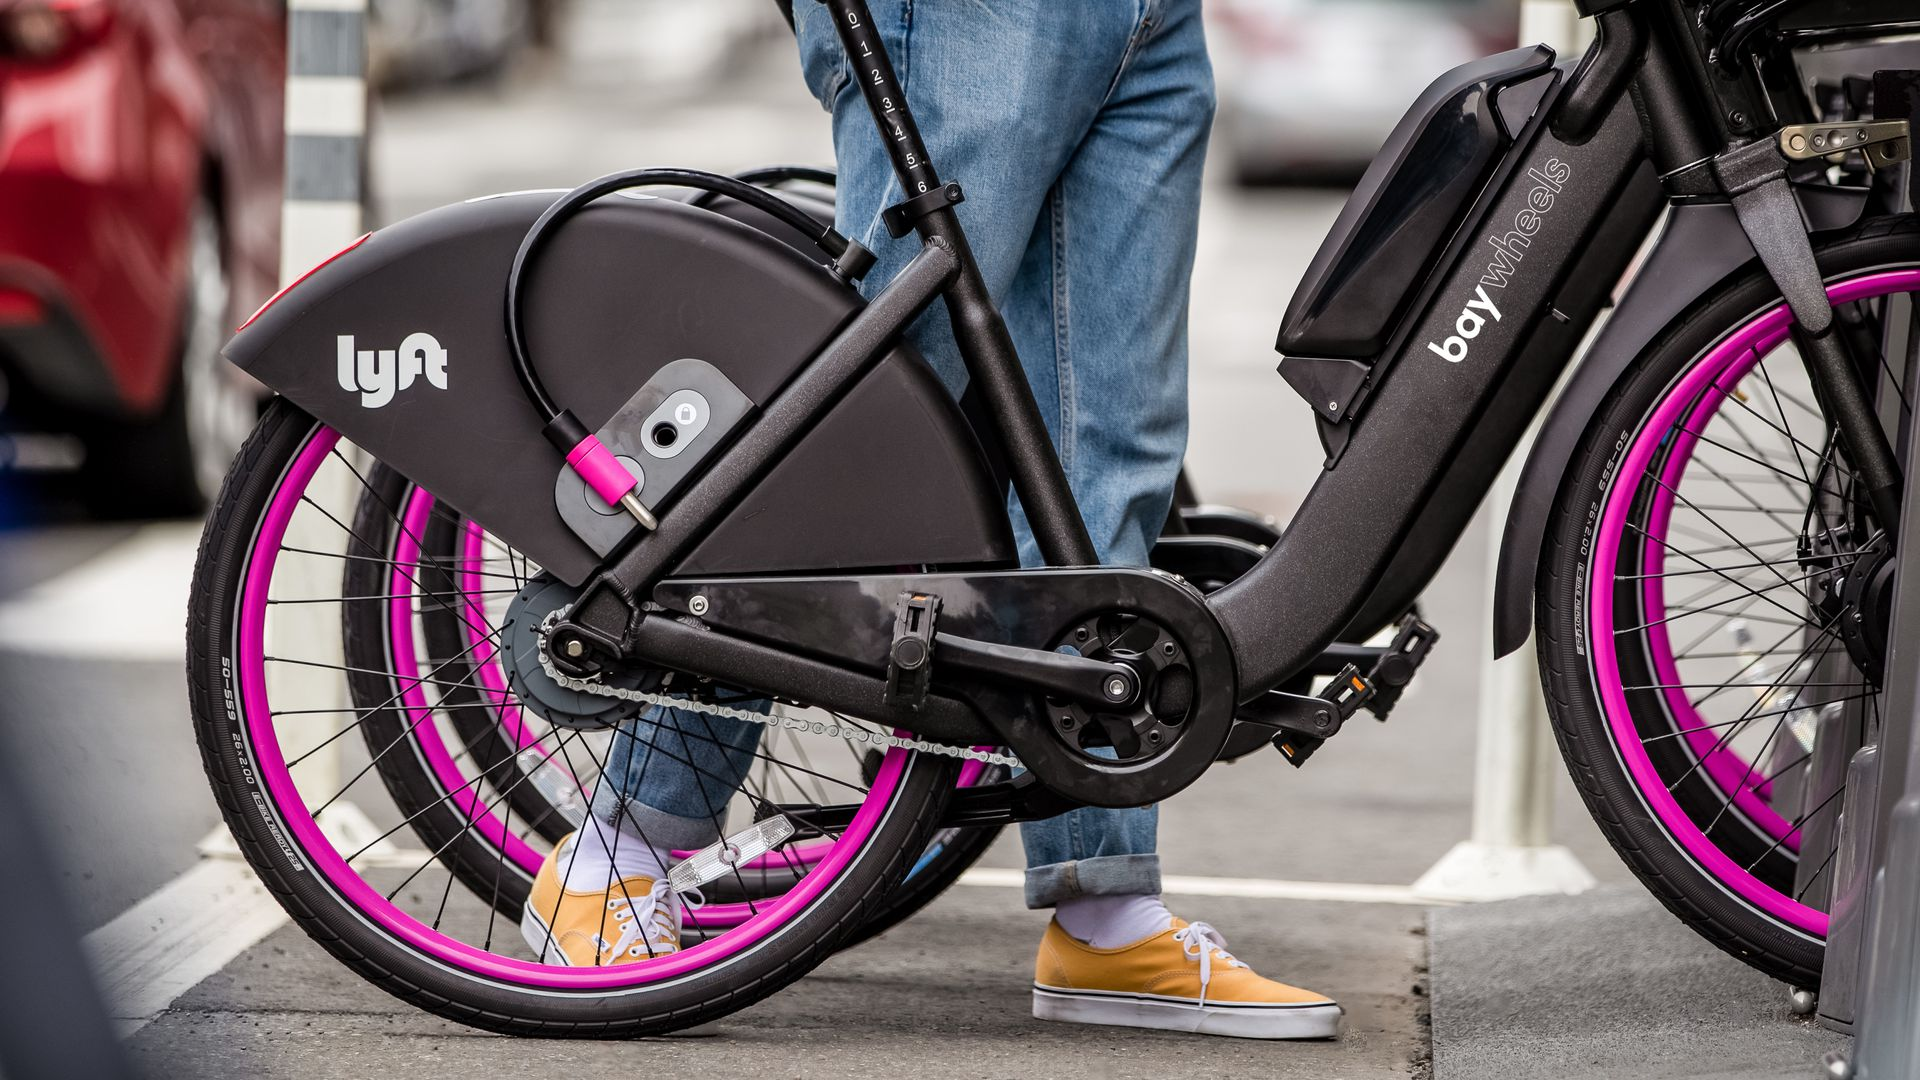 Photo of Lyft's new bike-share bikes with Lyft and Bay Wheels branding.